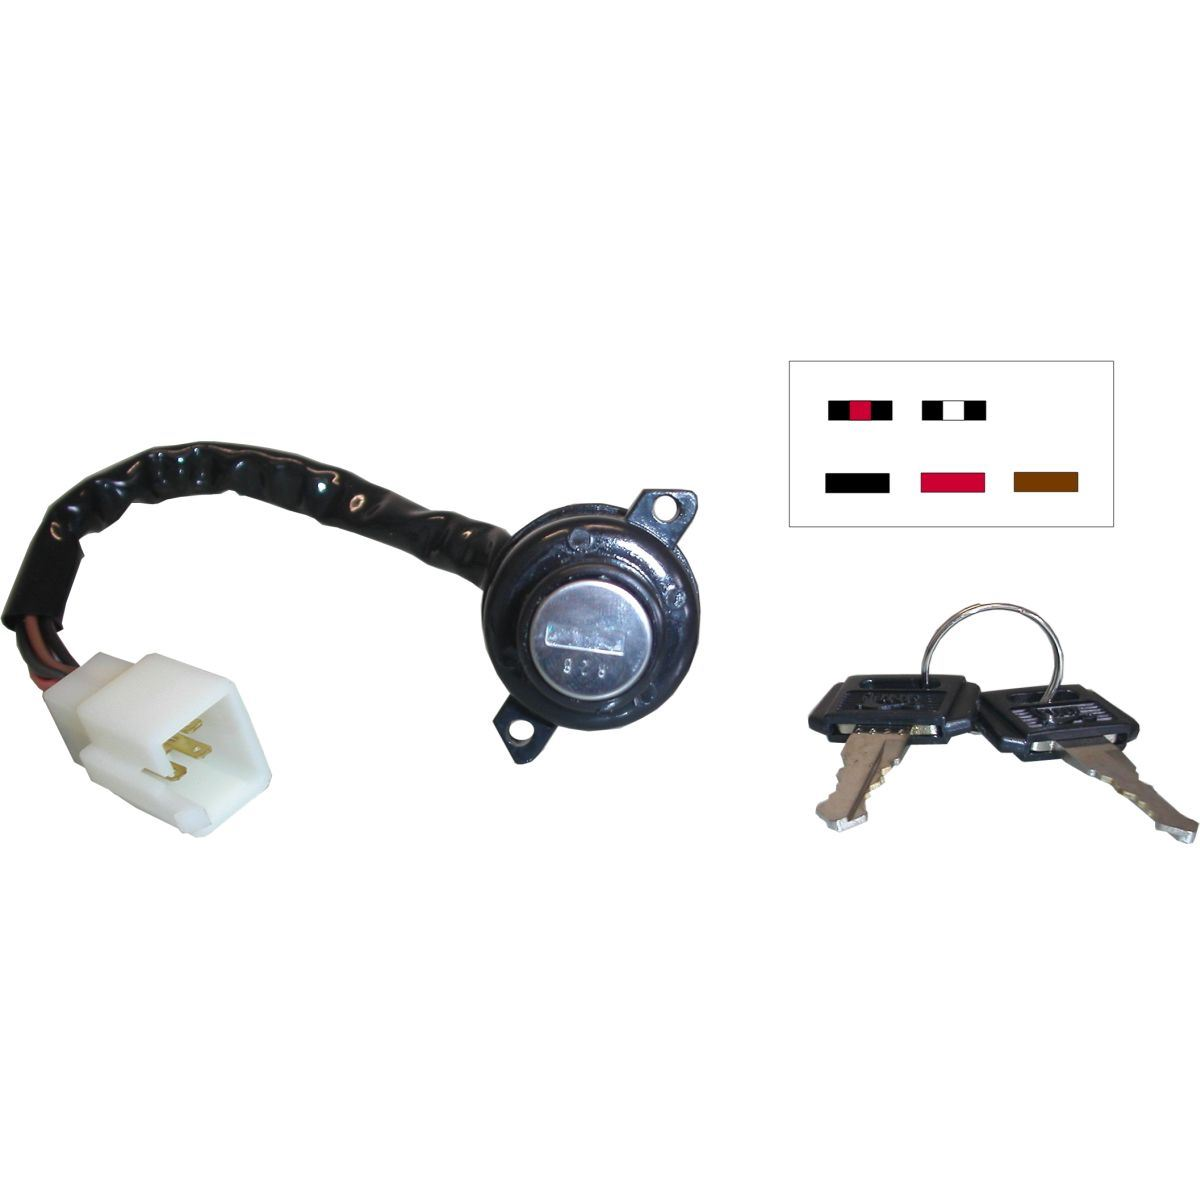 hight resolution of picture of ignition switch yamaha v80 1979 1982 5 wires